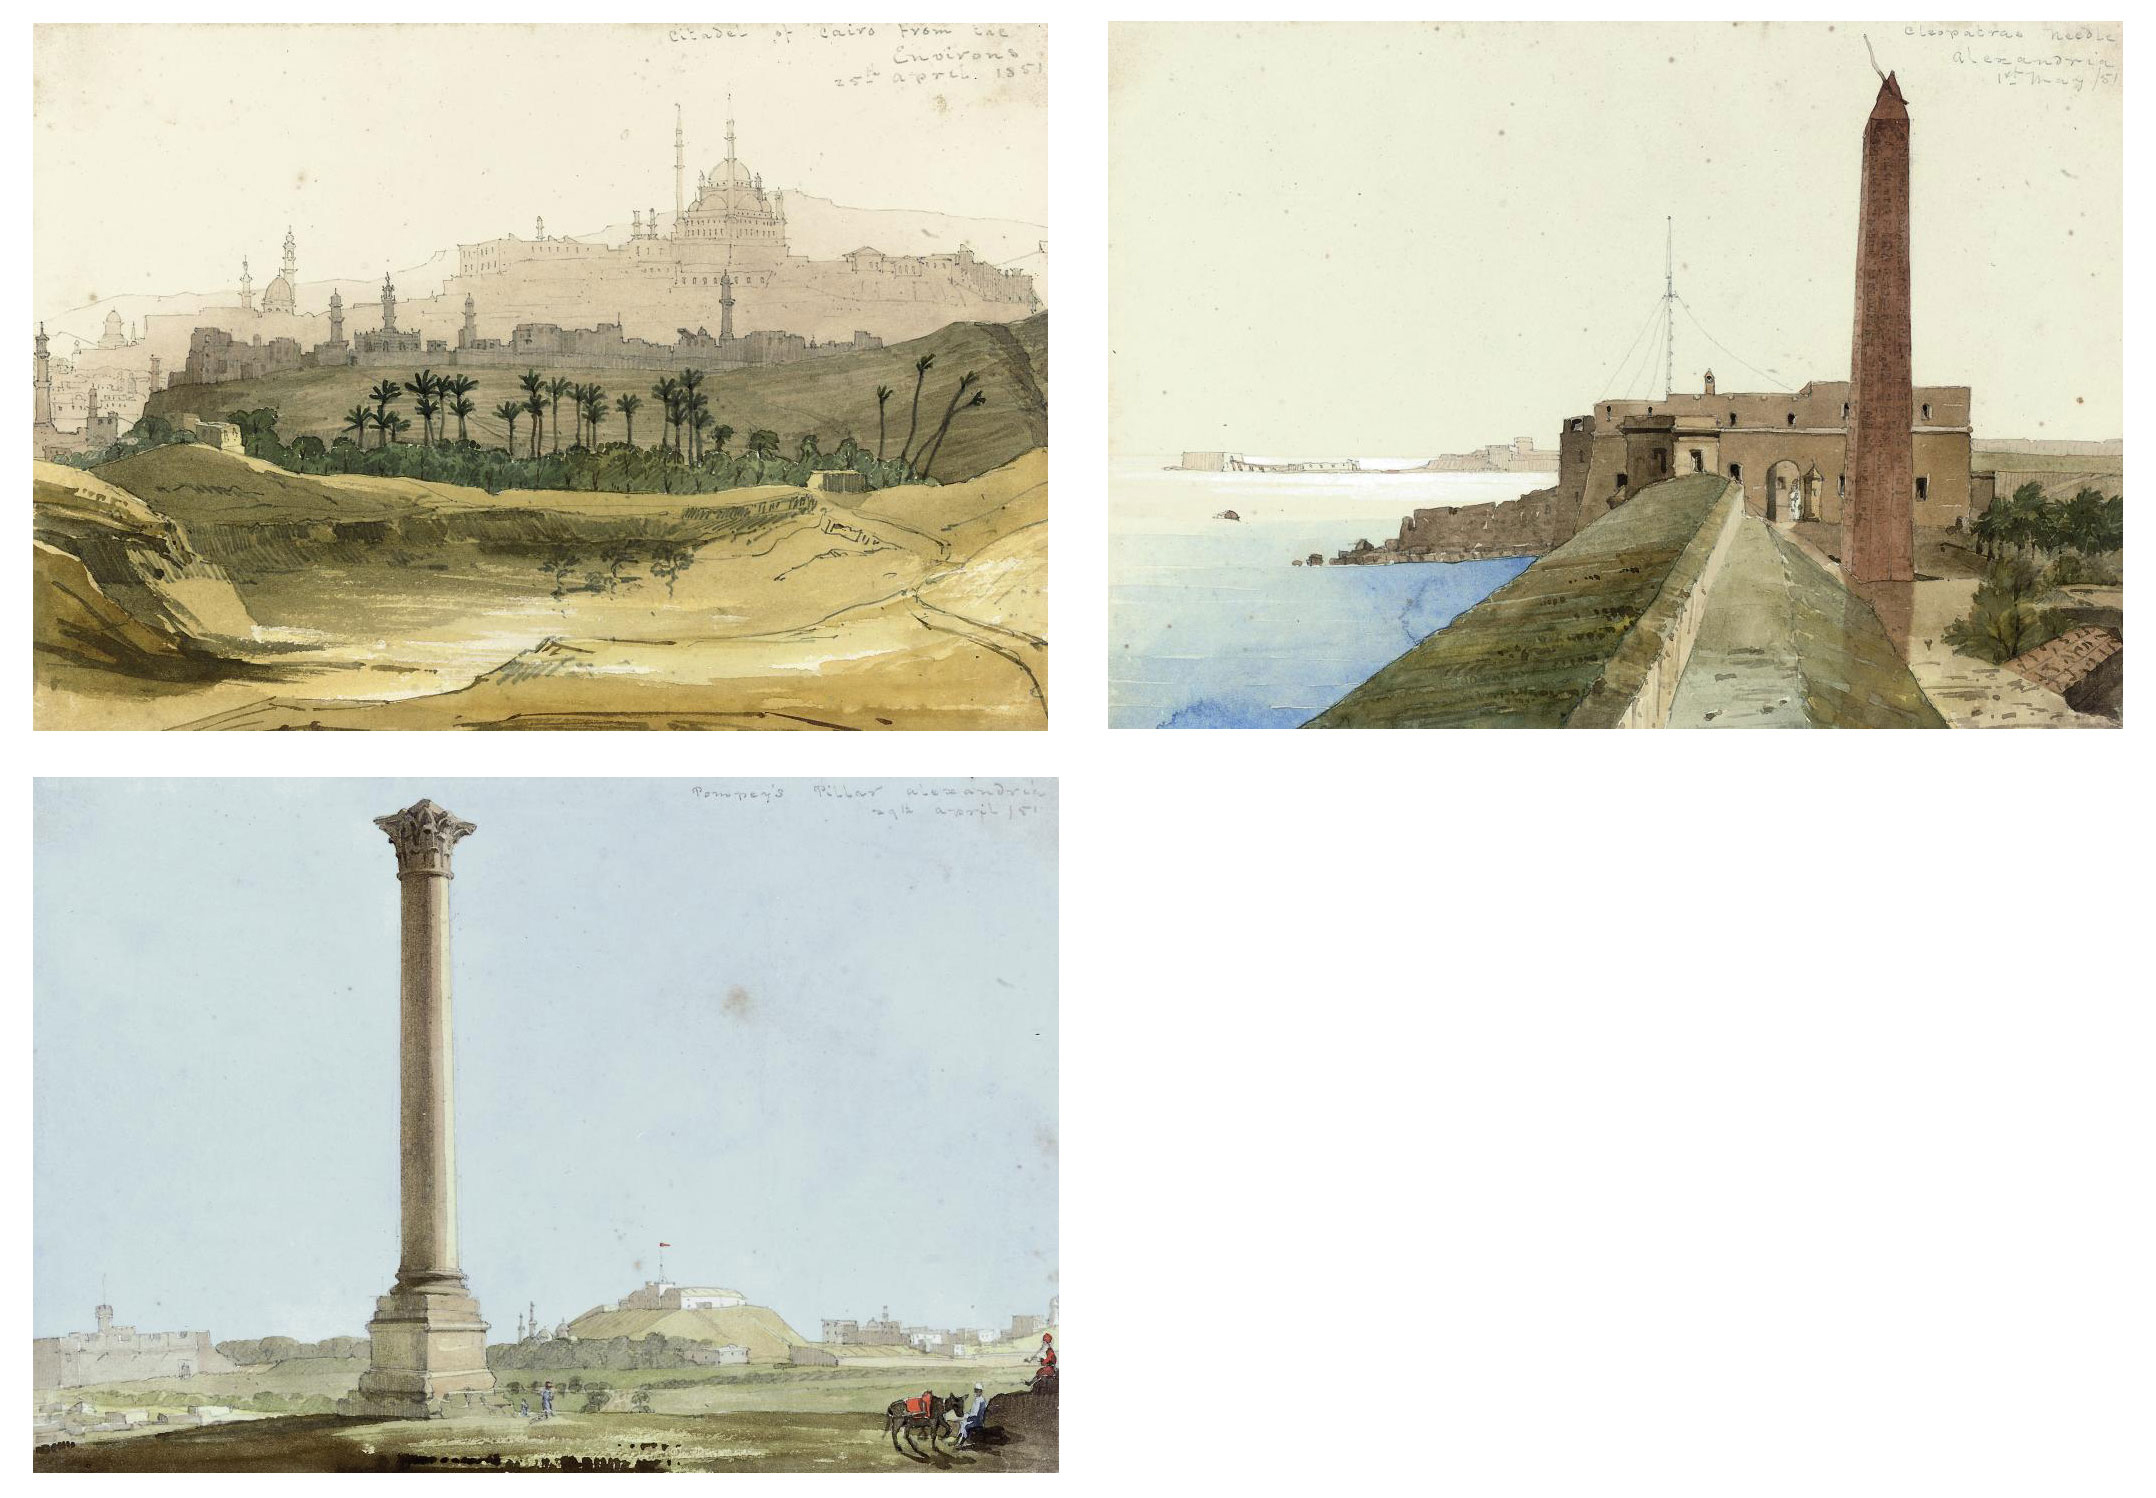 The Citadel of Cairo from the environs; Cleopatra's Needle, Alexandria; and Pompey's Pillar, Alexandria